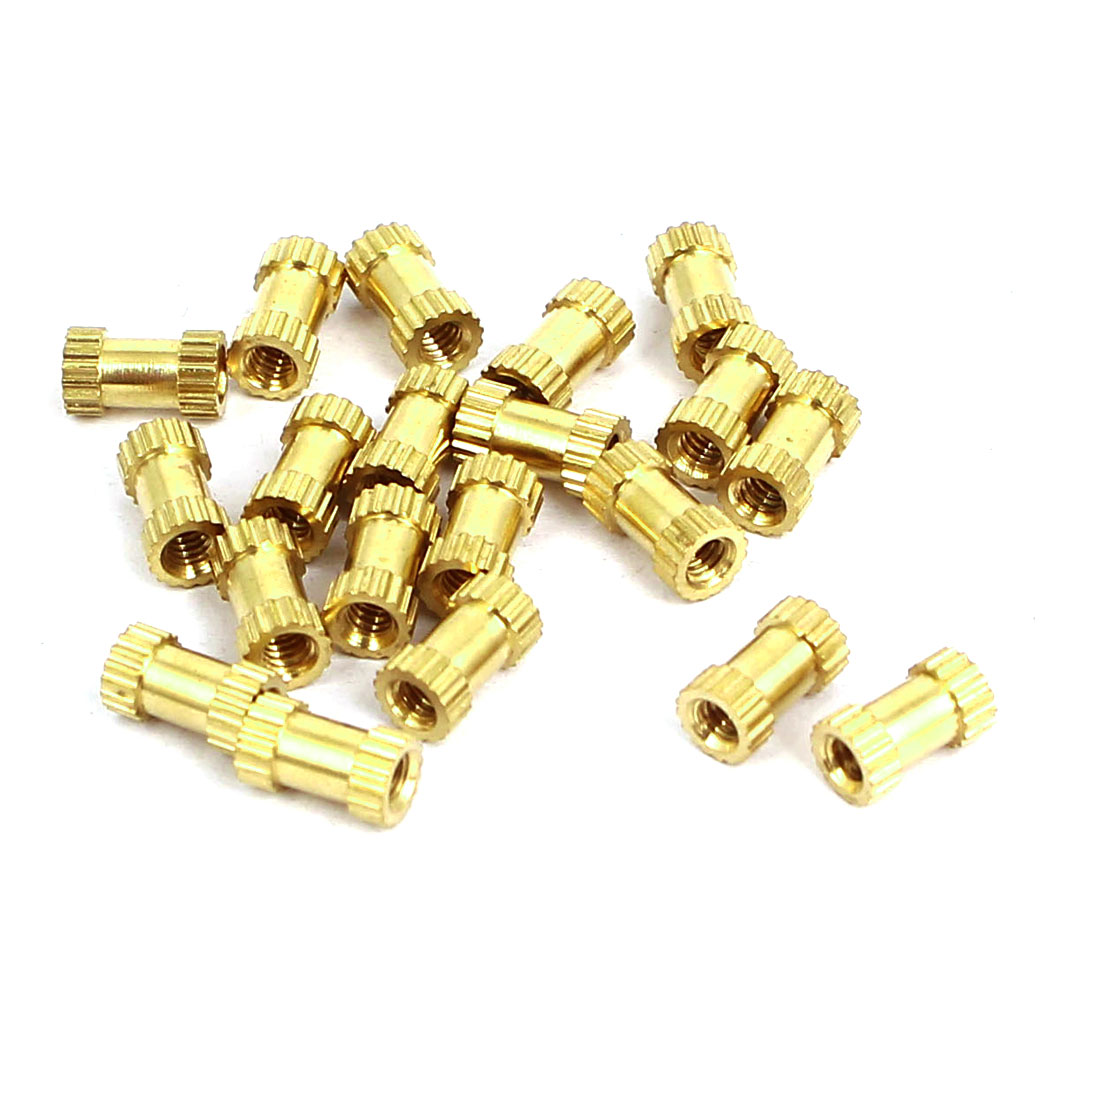 M2x6mmx3.5mm Female Threaded Brass Knurled Insert Embedded Nuts Gold Tone 20pcs